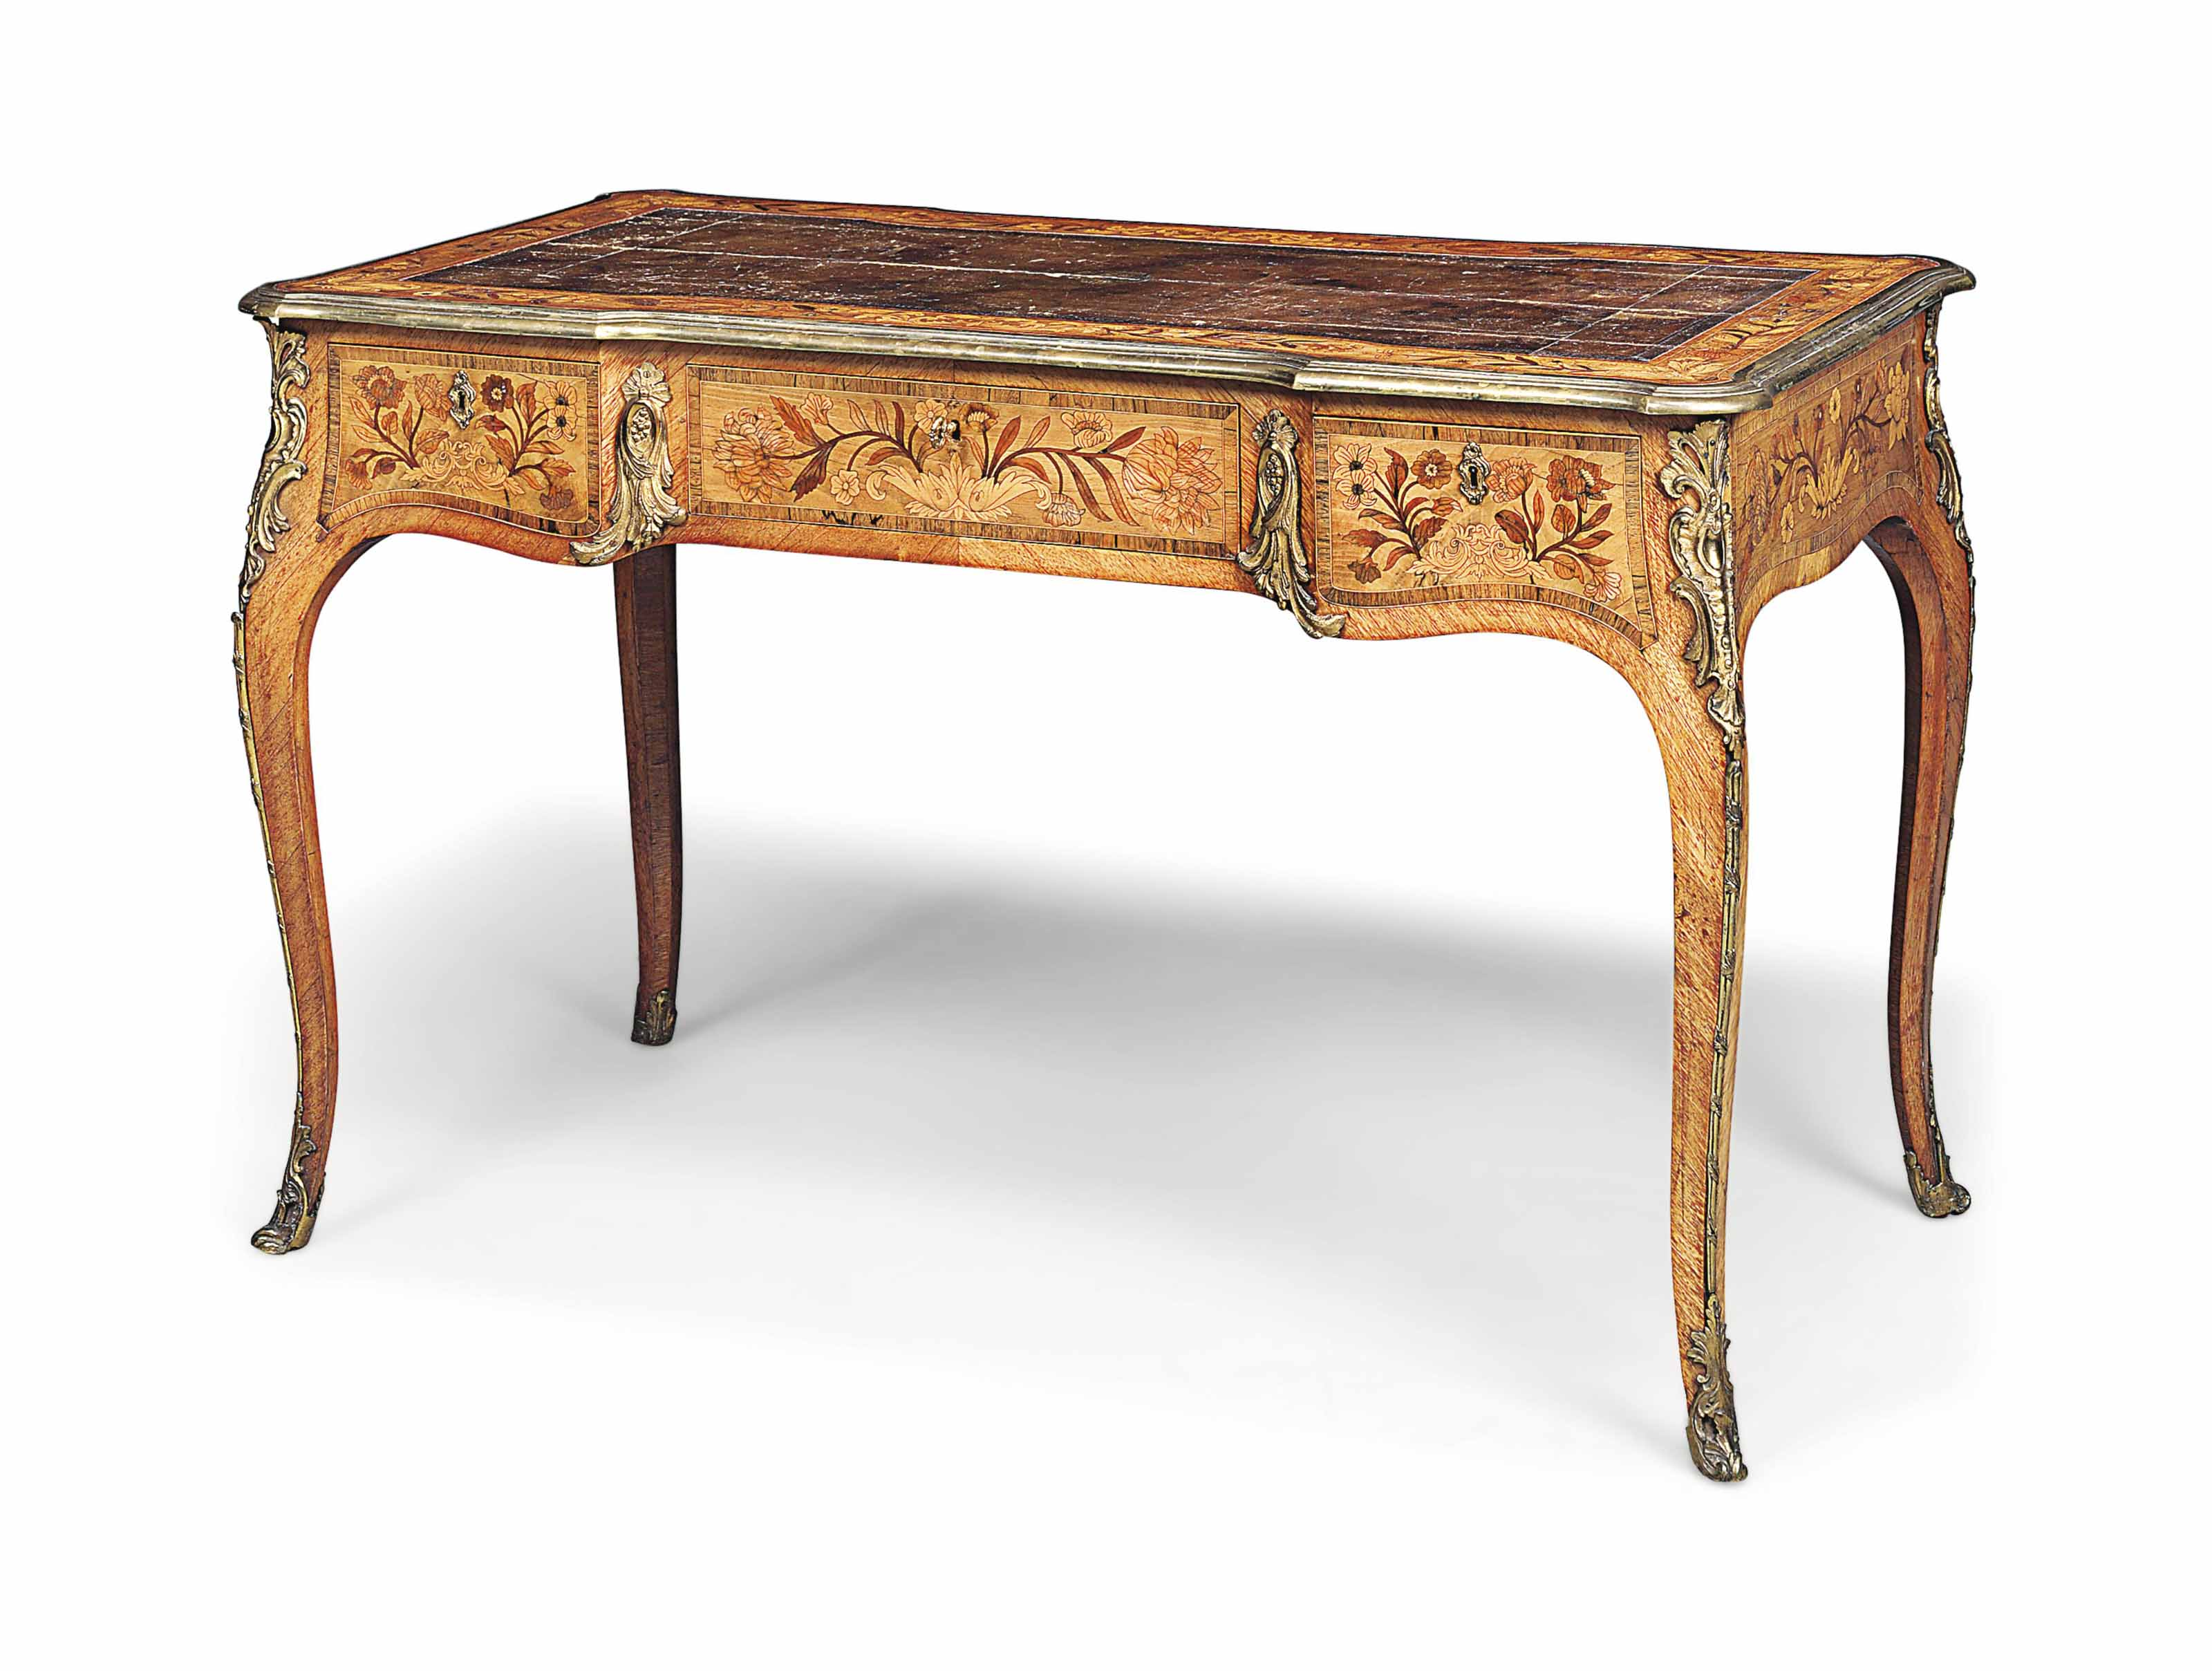 A WILLIAM IV ORMOLU-MOUNTED KINGWOOD, ROSEWOOD, WALNUT AND MARQUETRY WRITING TABLE